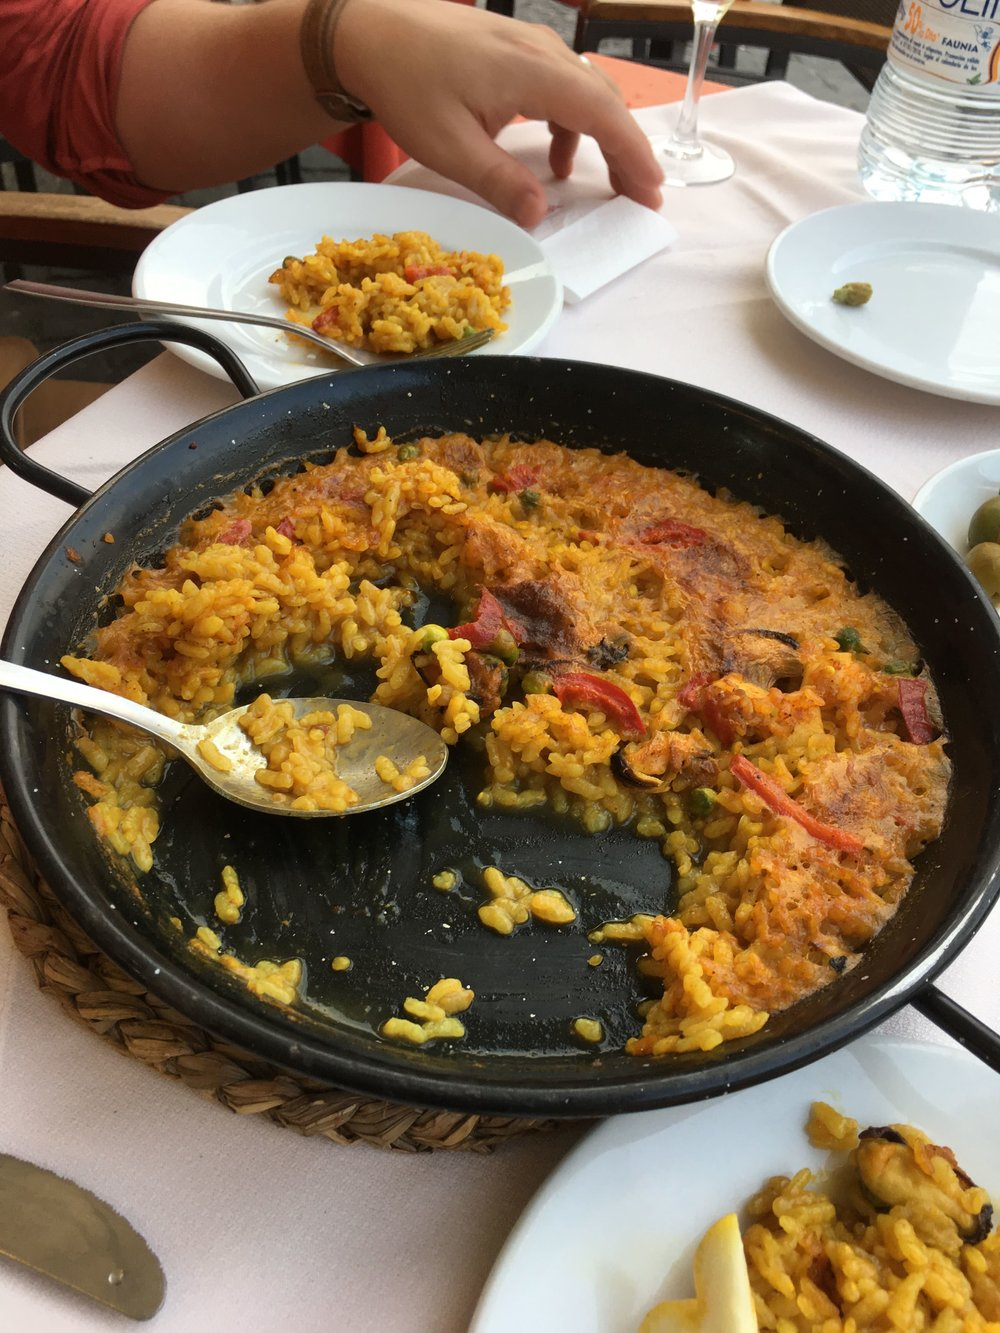 Enjoying a Spanish classic—paella—at an outdoor cafe